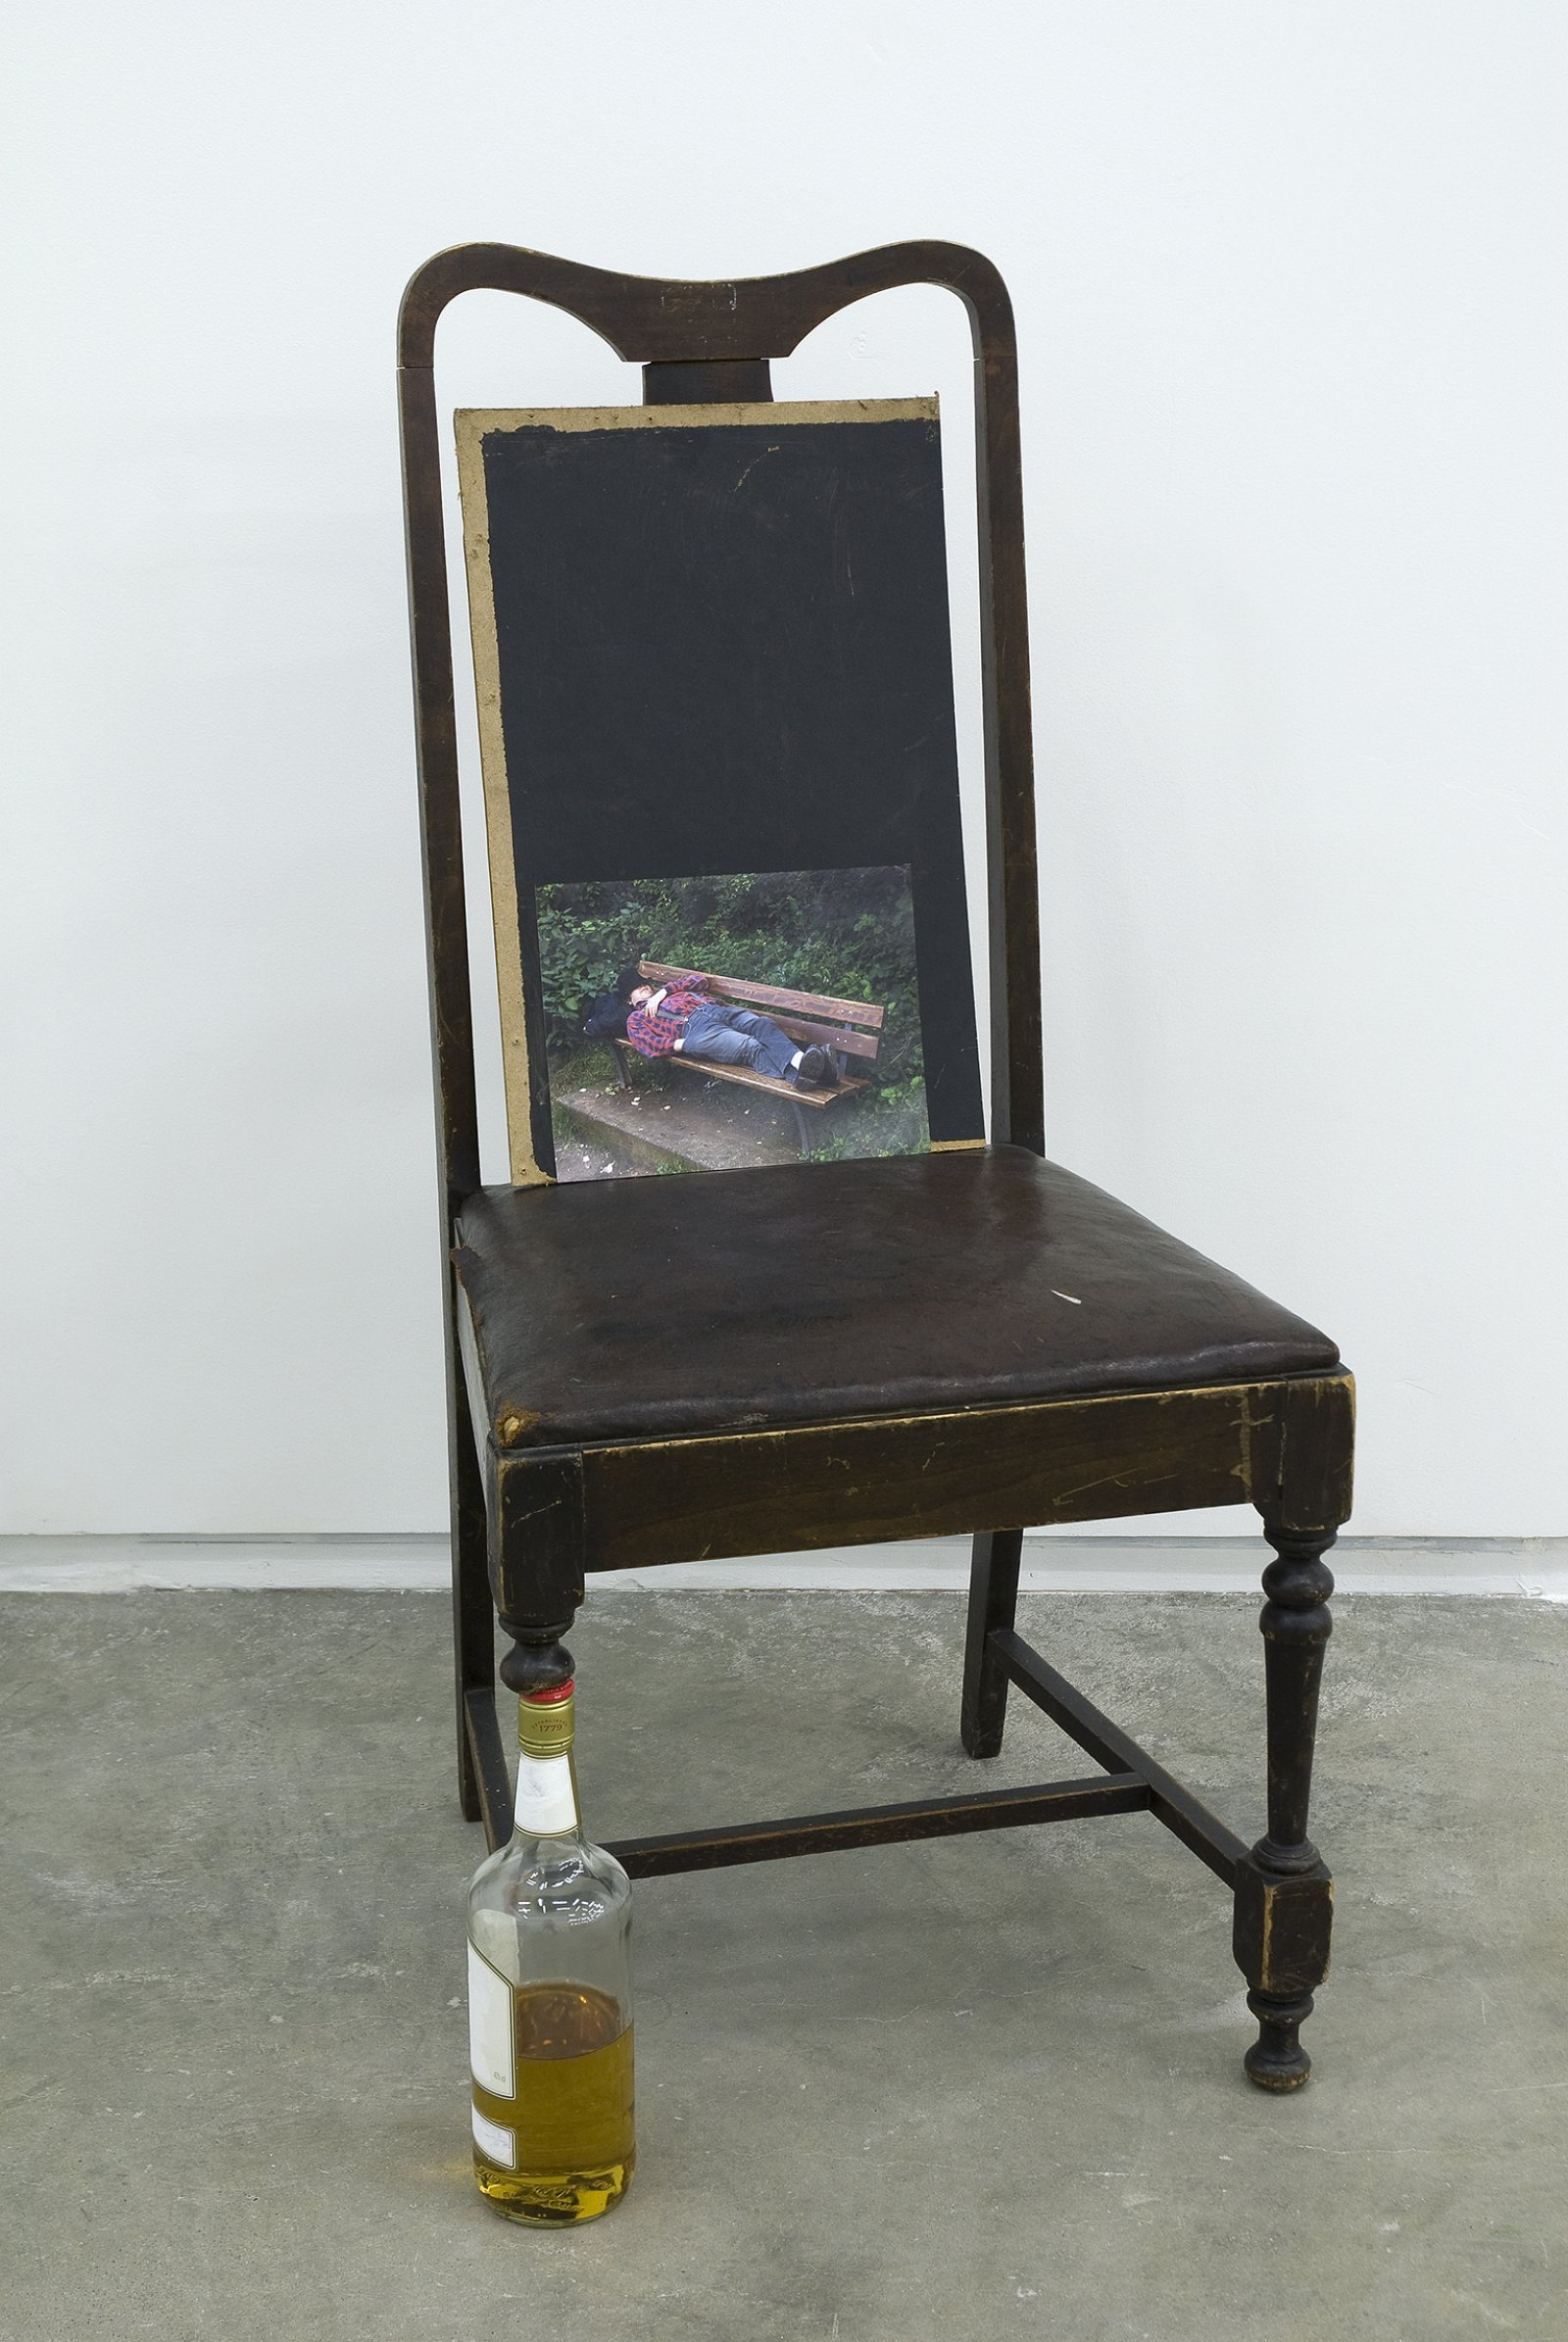 Gareth Moore, Untitled from Uncertain Pilgrimage, 2009, broken chair, whiskey, paint, wood, 'Friend in Theatre, Asleep' lightjet print, 40 x 19 x 18 in. (102 x 47 x 44 cm) by Ashes Withyman